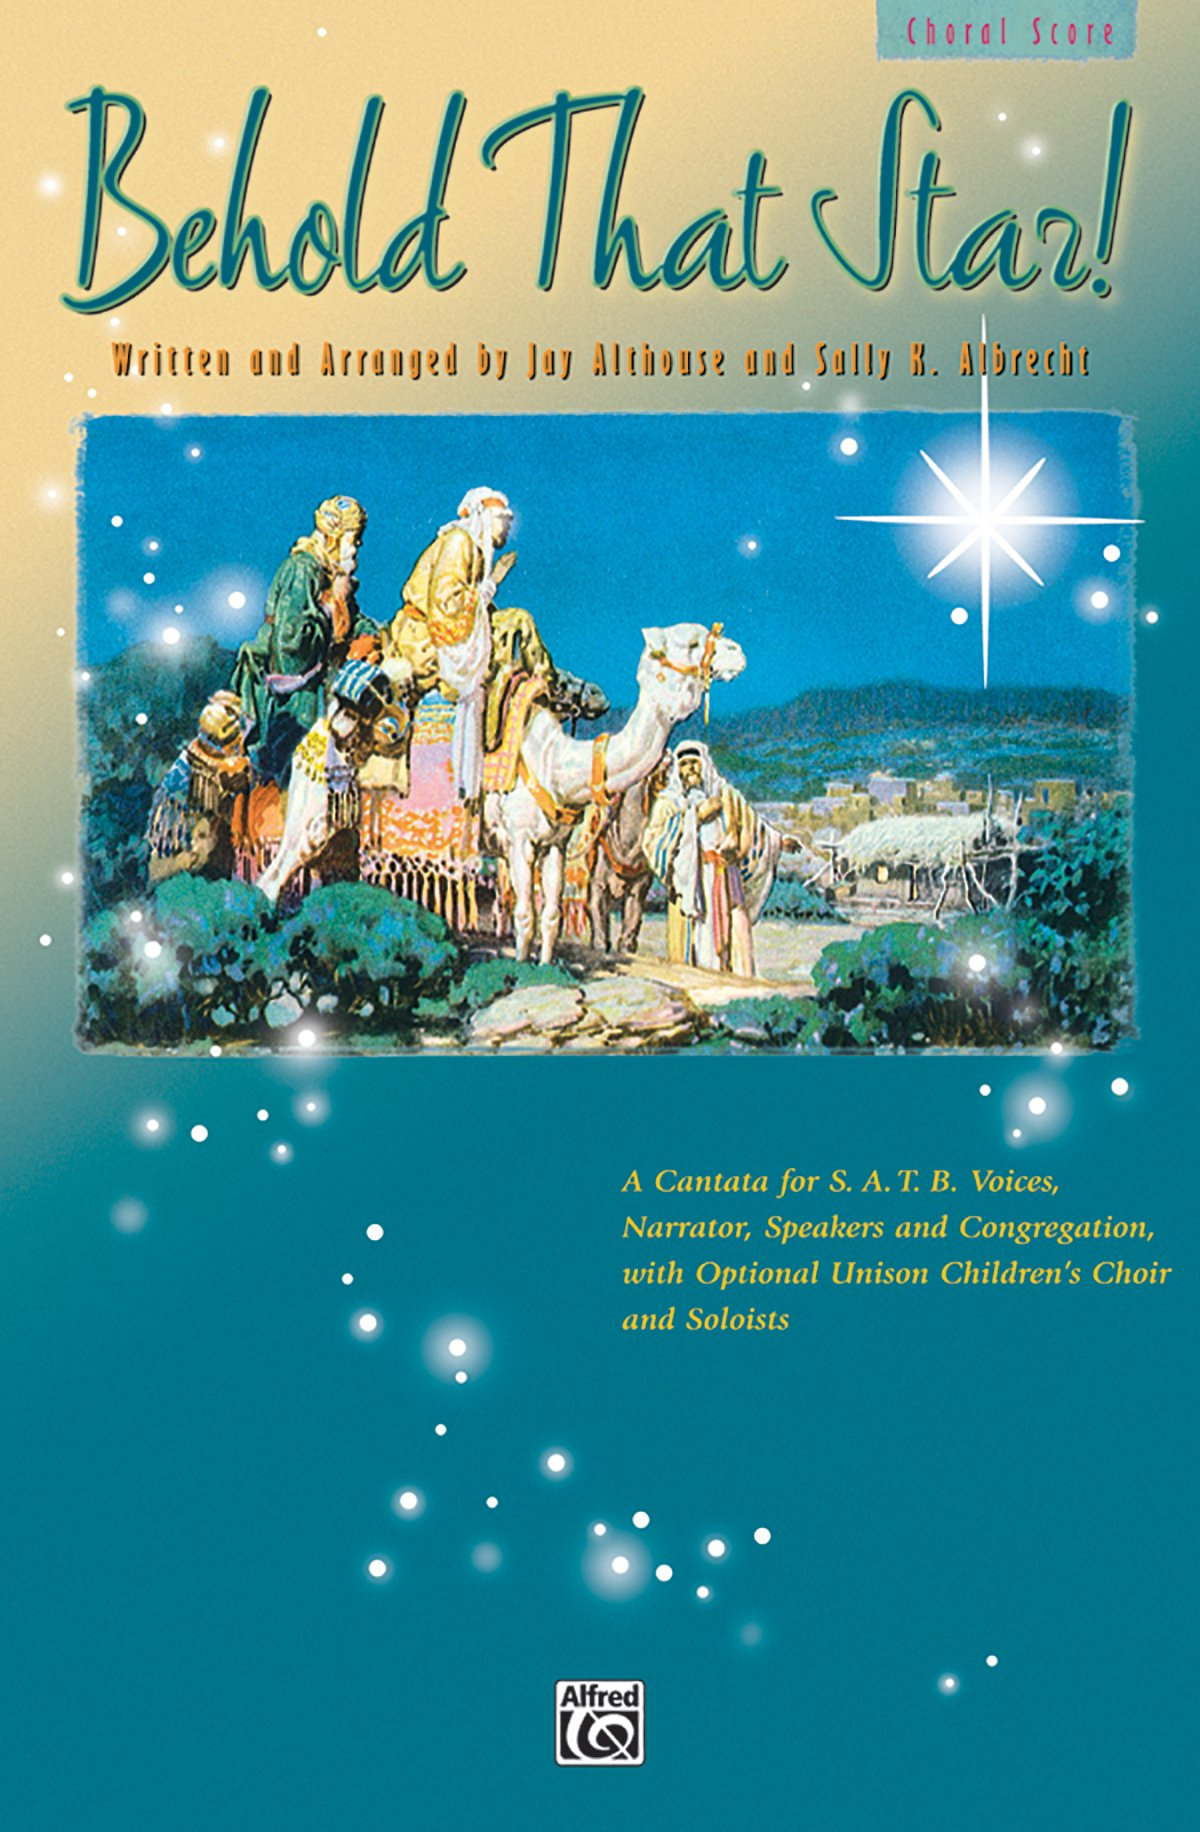 Read Online Behold That Star!: SATB, Choral Score ebook